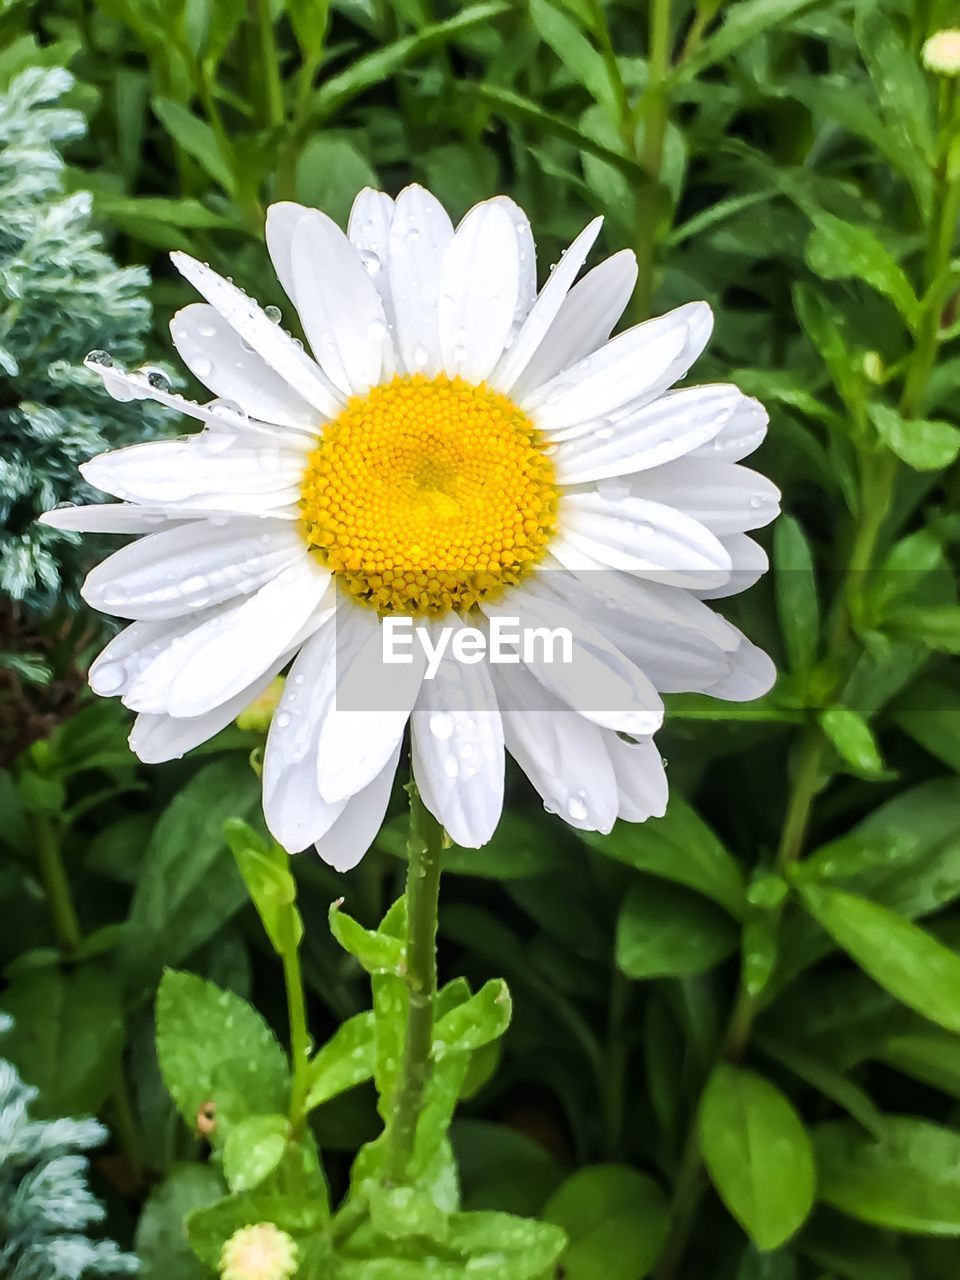 flower, nature, growth, beauty in nature, plant, petal, fragility, white color, freshness, blooming, flower head, outdoors, no people, close-up, day